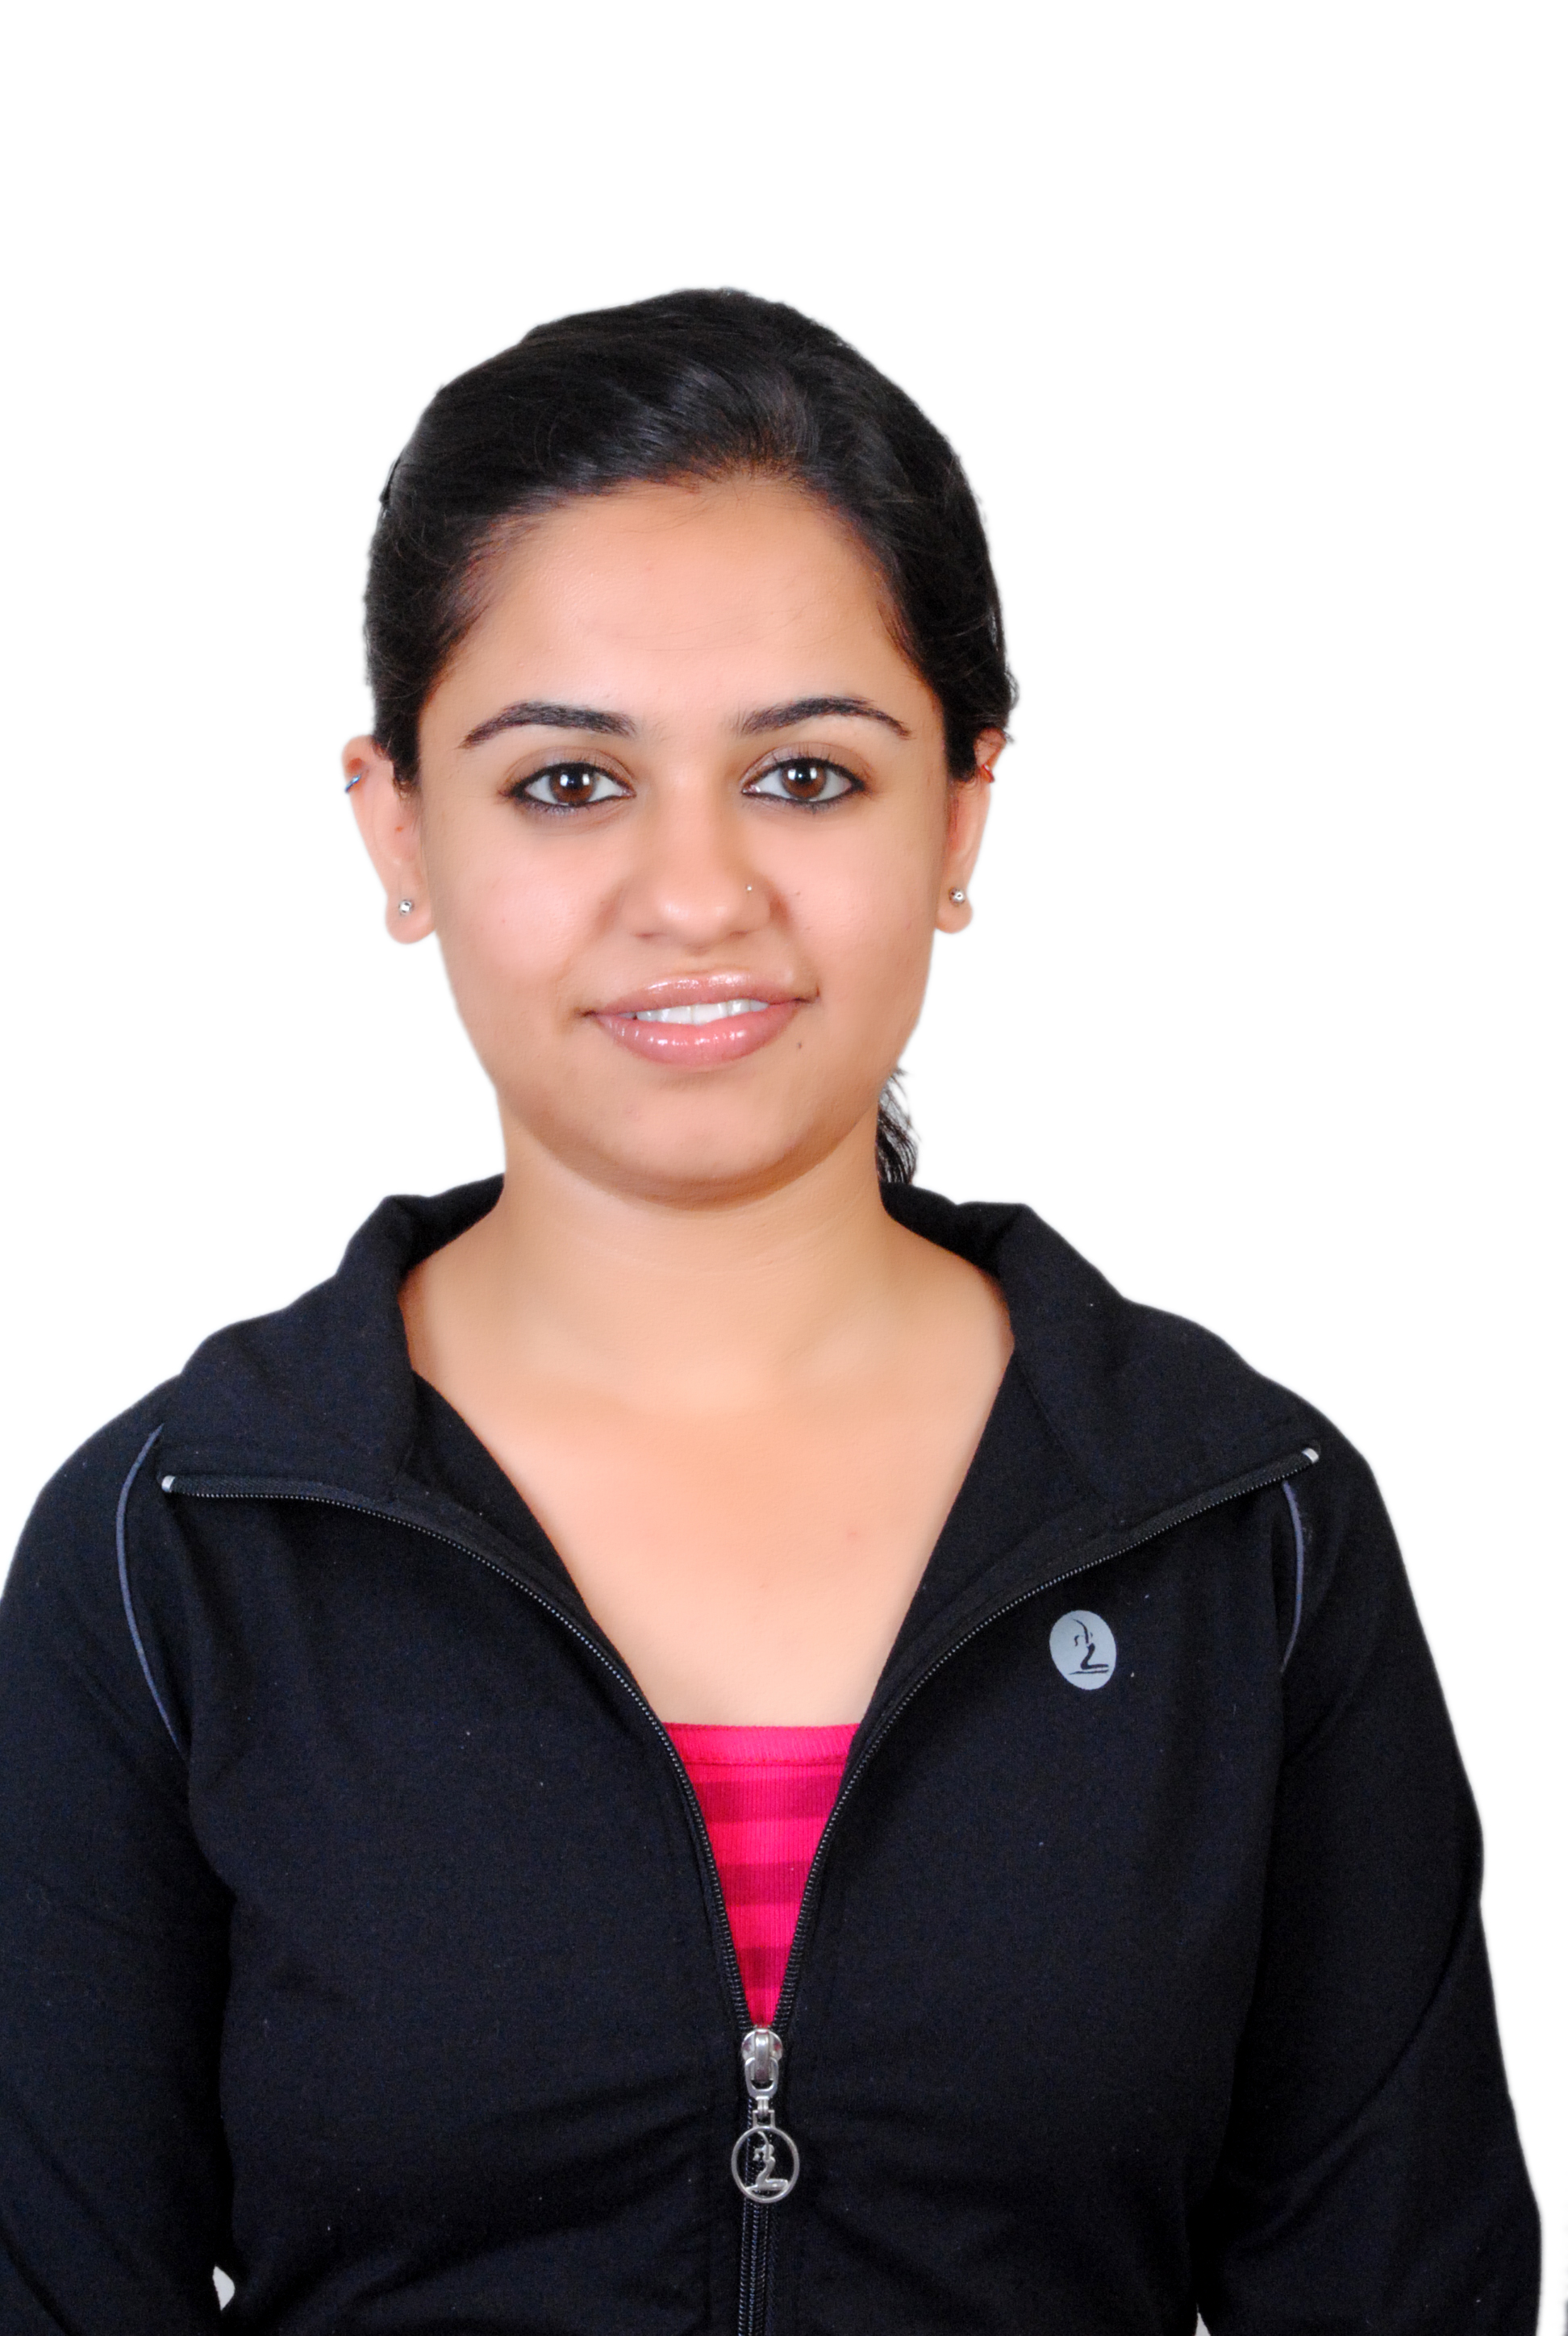 Srishti Sood - Asstt. Editor of Indian Tollways